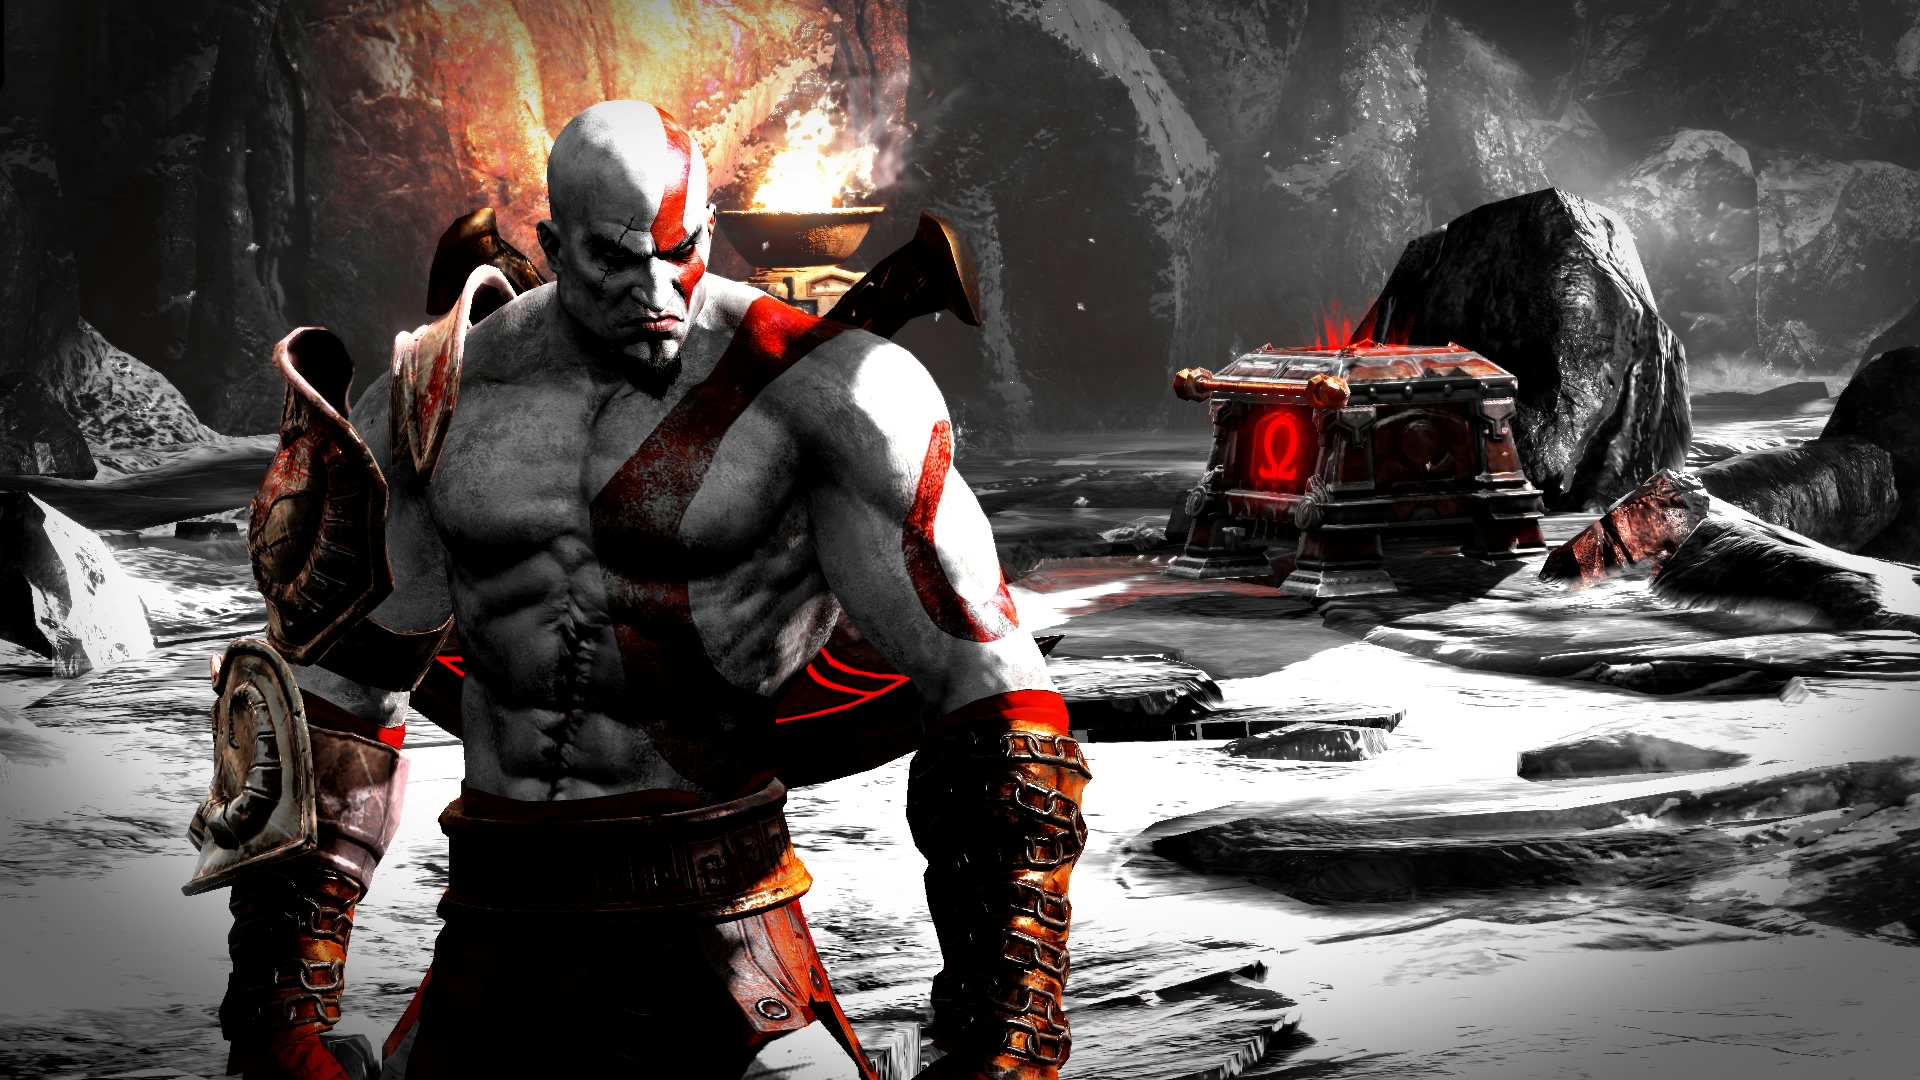 1064984-new-god-of-war-3-wallpapers.jpg